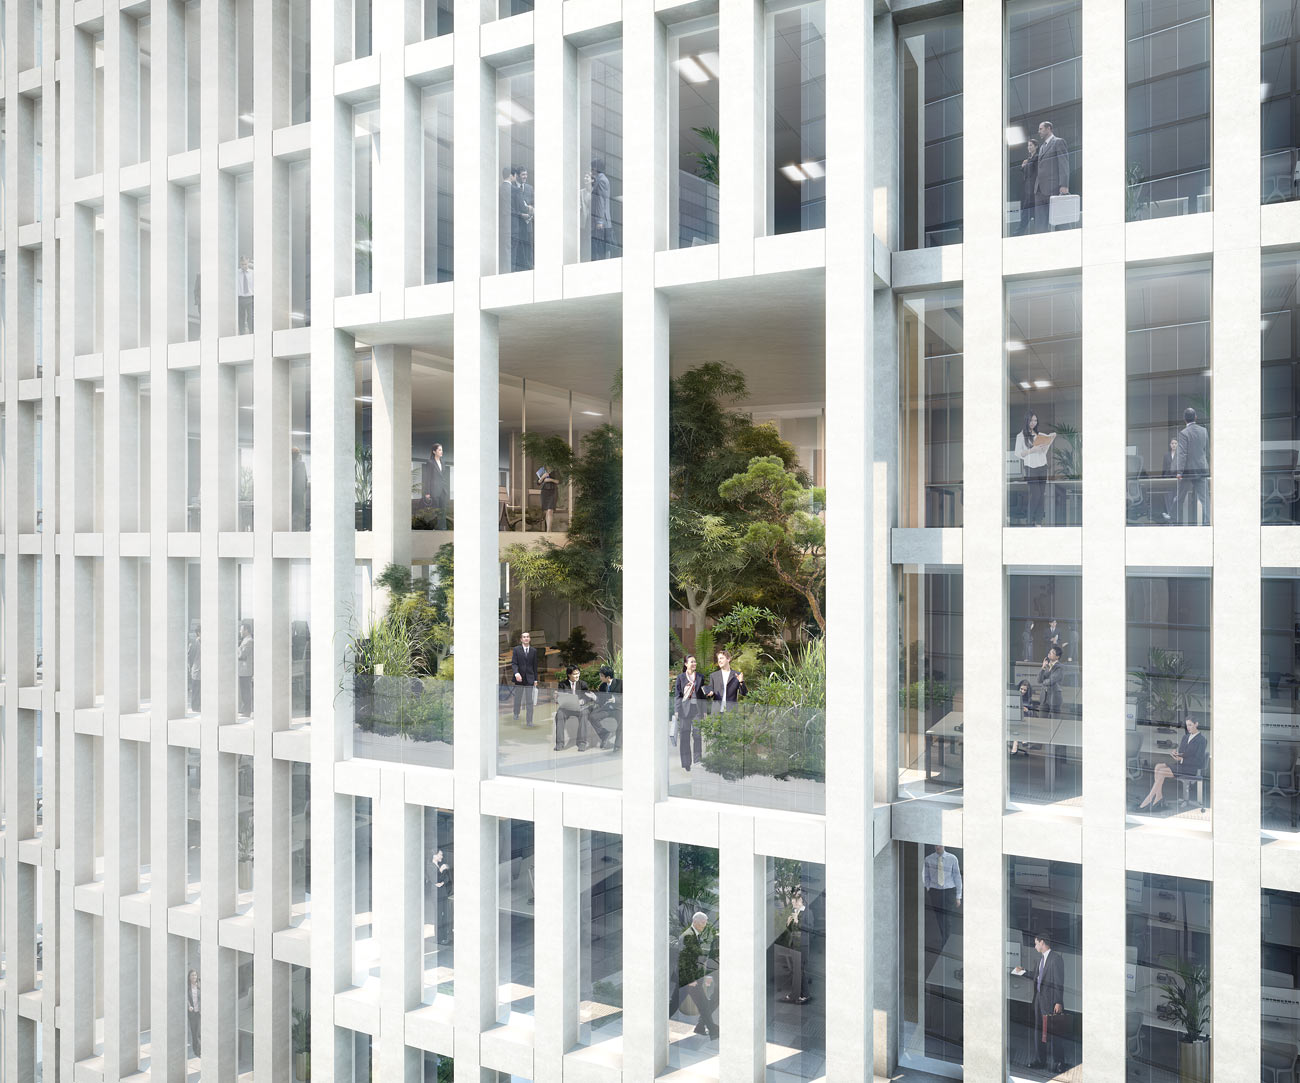 China Railway HQ Group High Garden View by Marks Barfield Architects